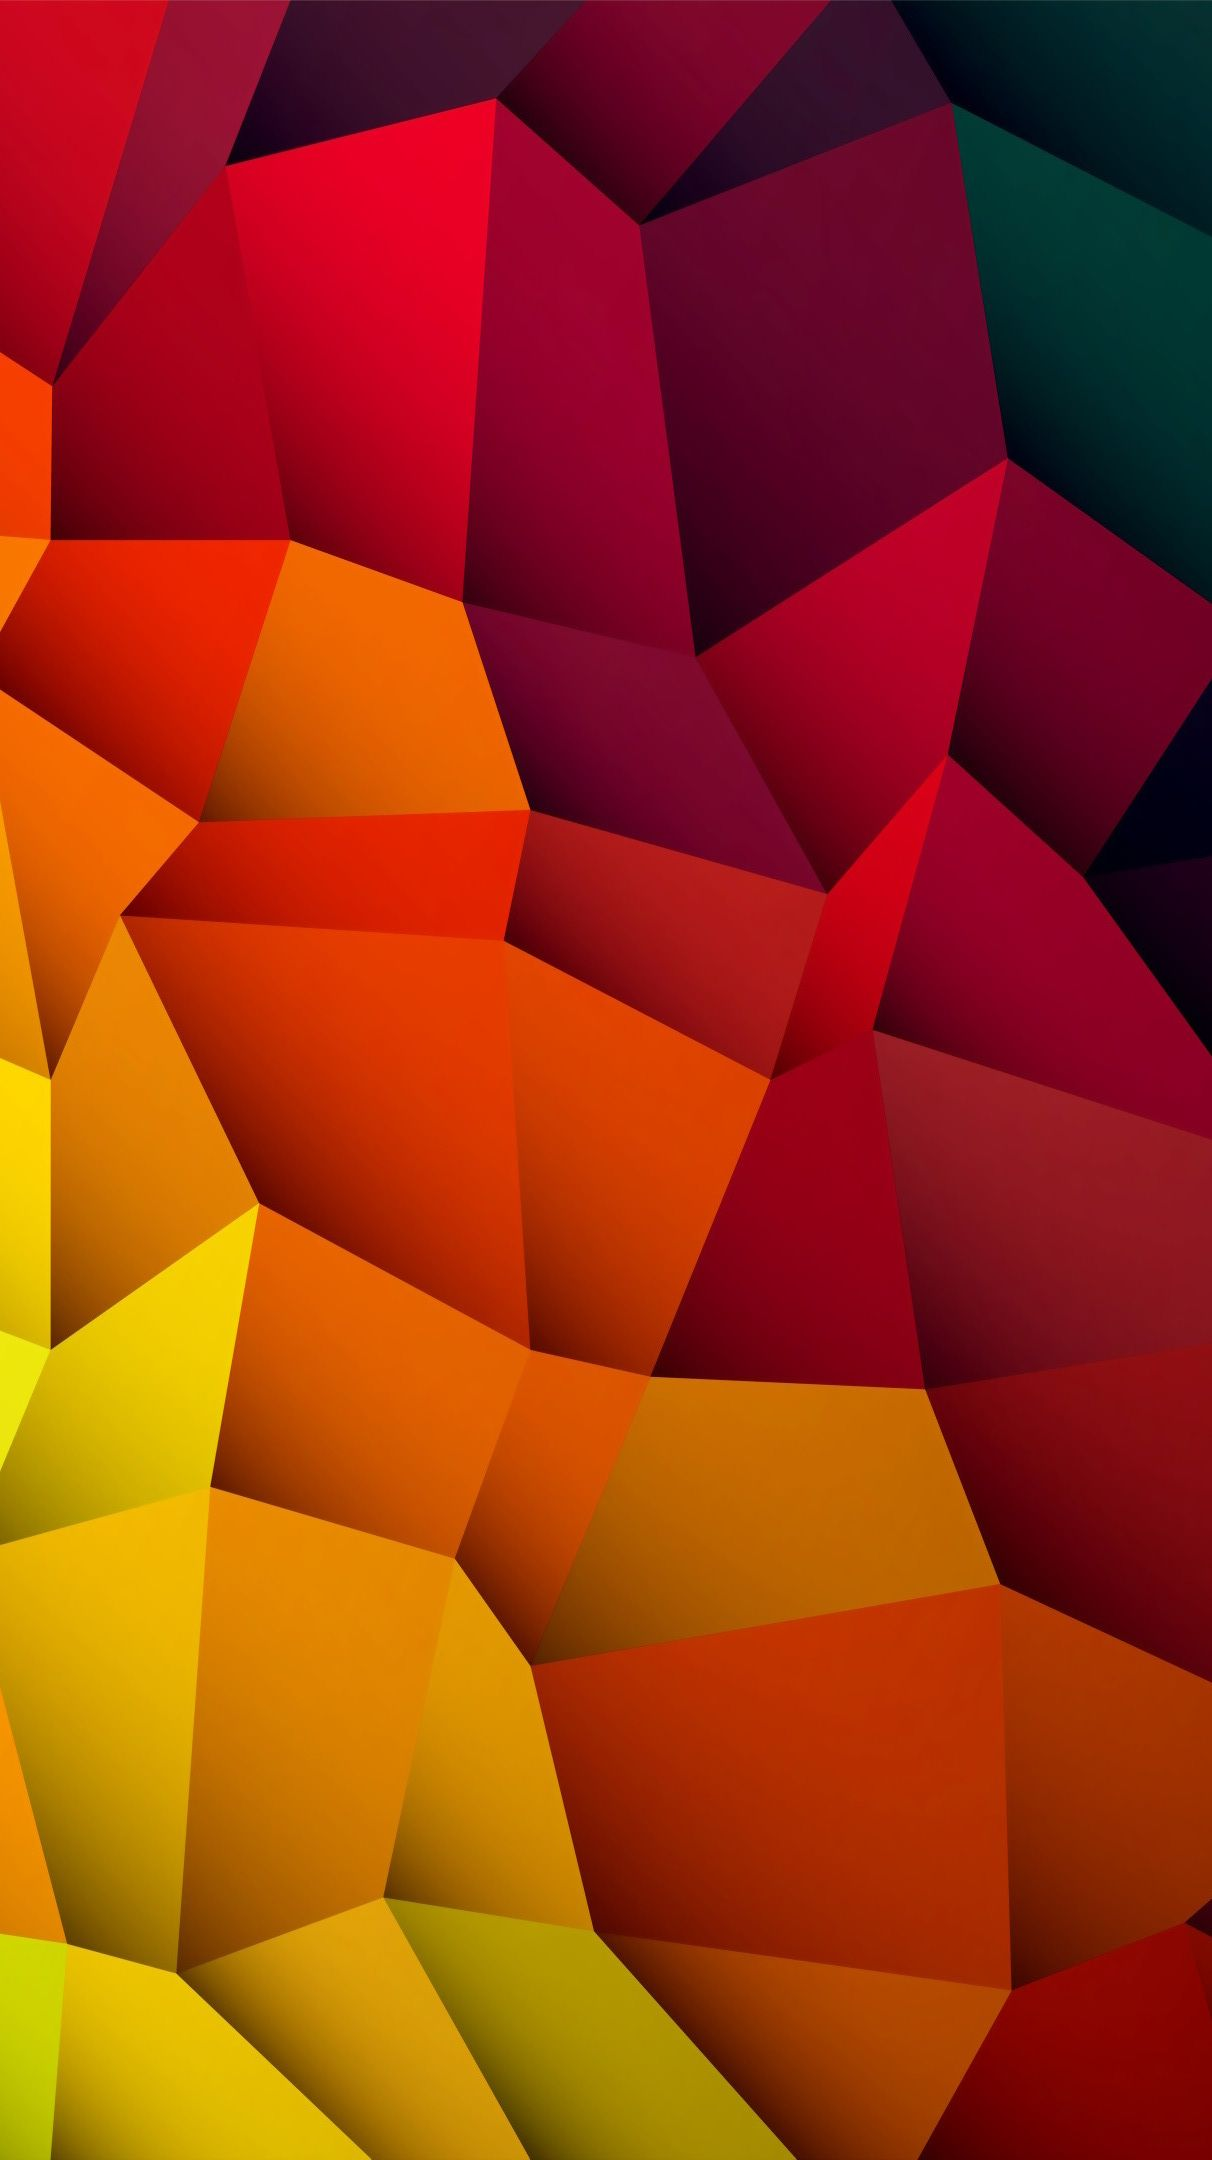 Colorful Gradient Abstract Wallpaper Phone Wallpaper Images